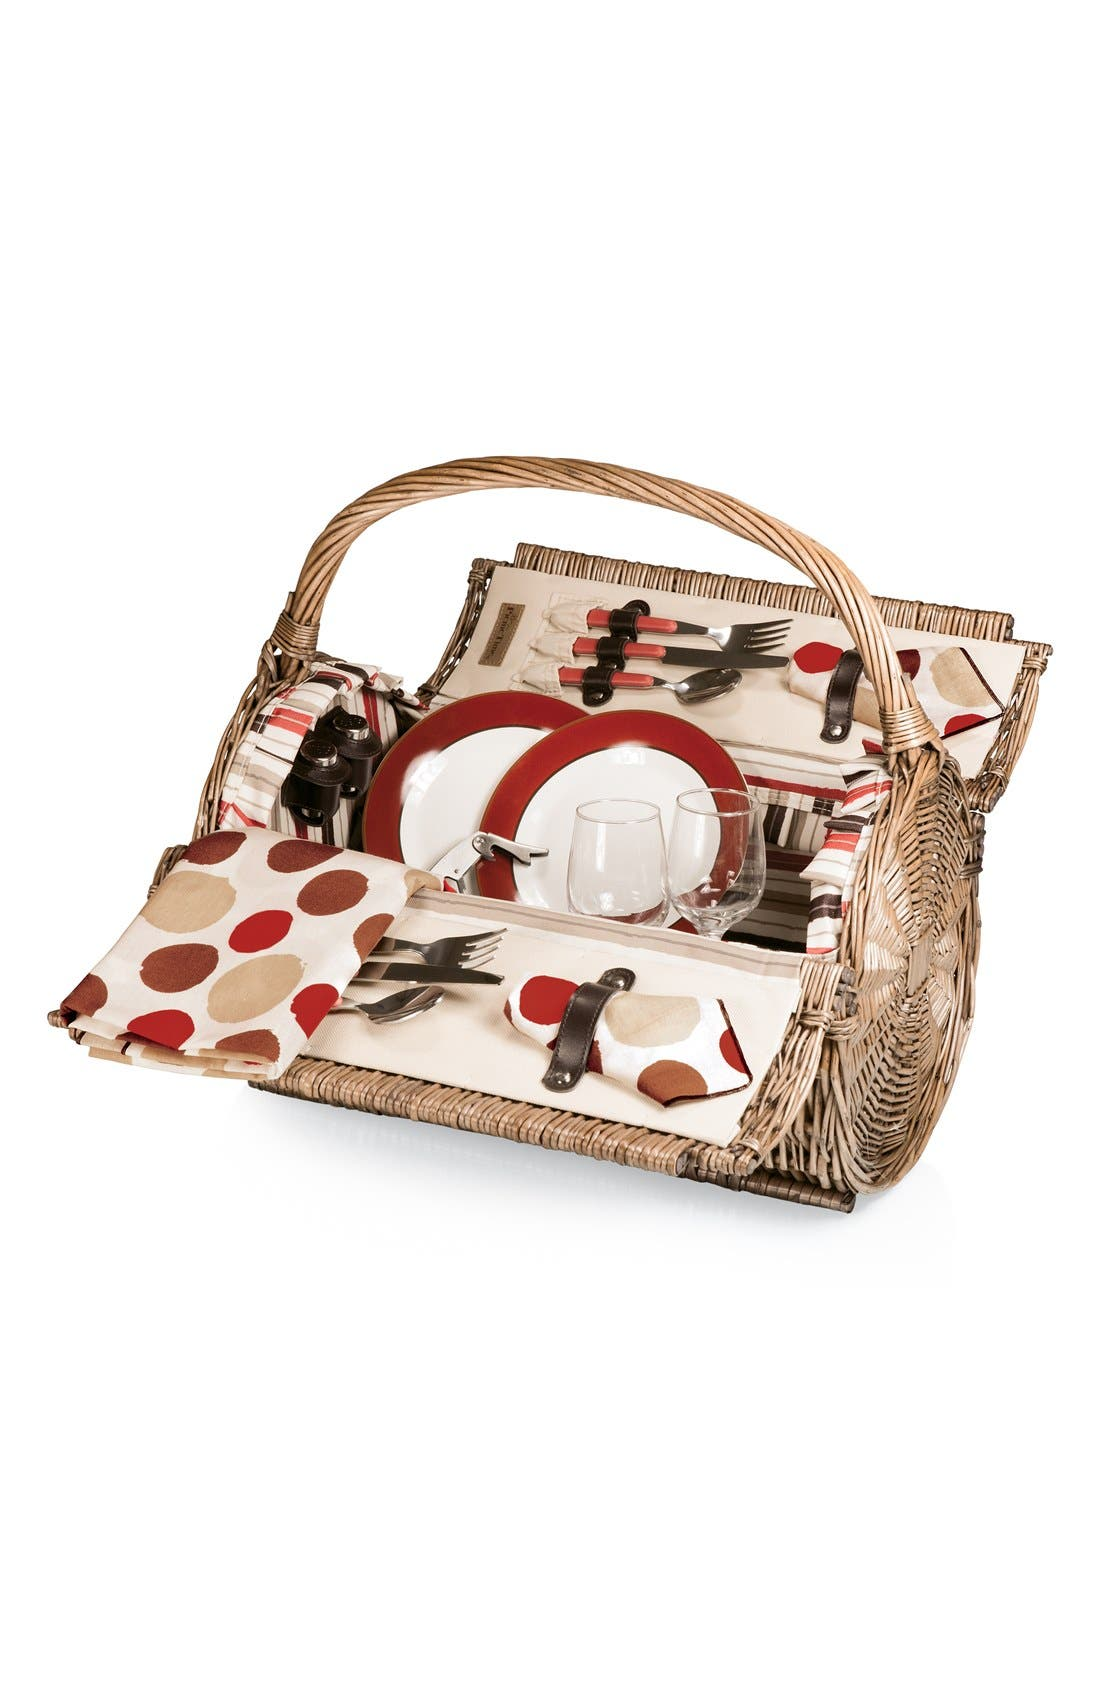 Main Image - Picnic Time 'Barrell' Wicker Picnic Basket